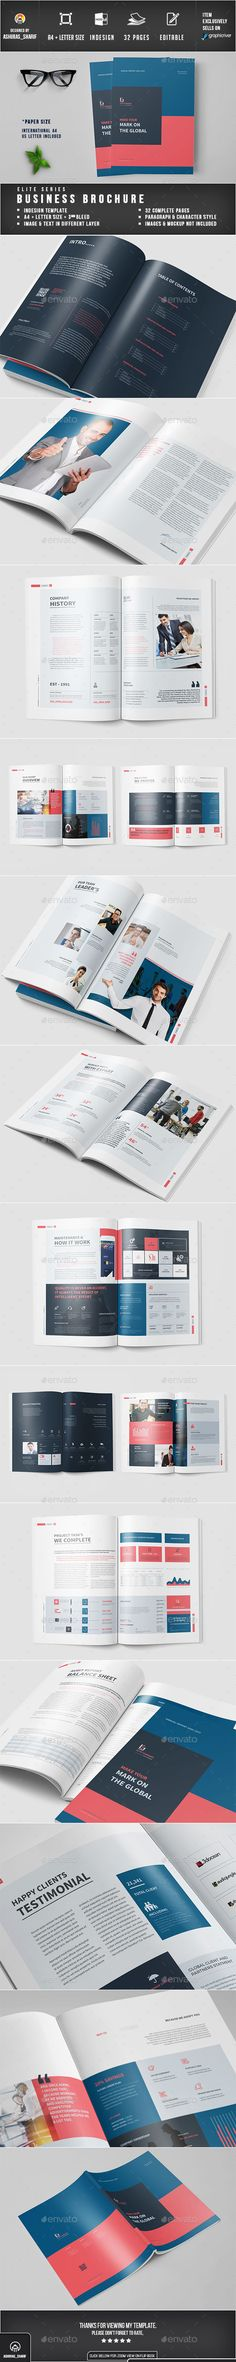 Brochure Corporate brochure, Annual reports and Brochures - business annual report template